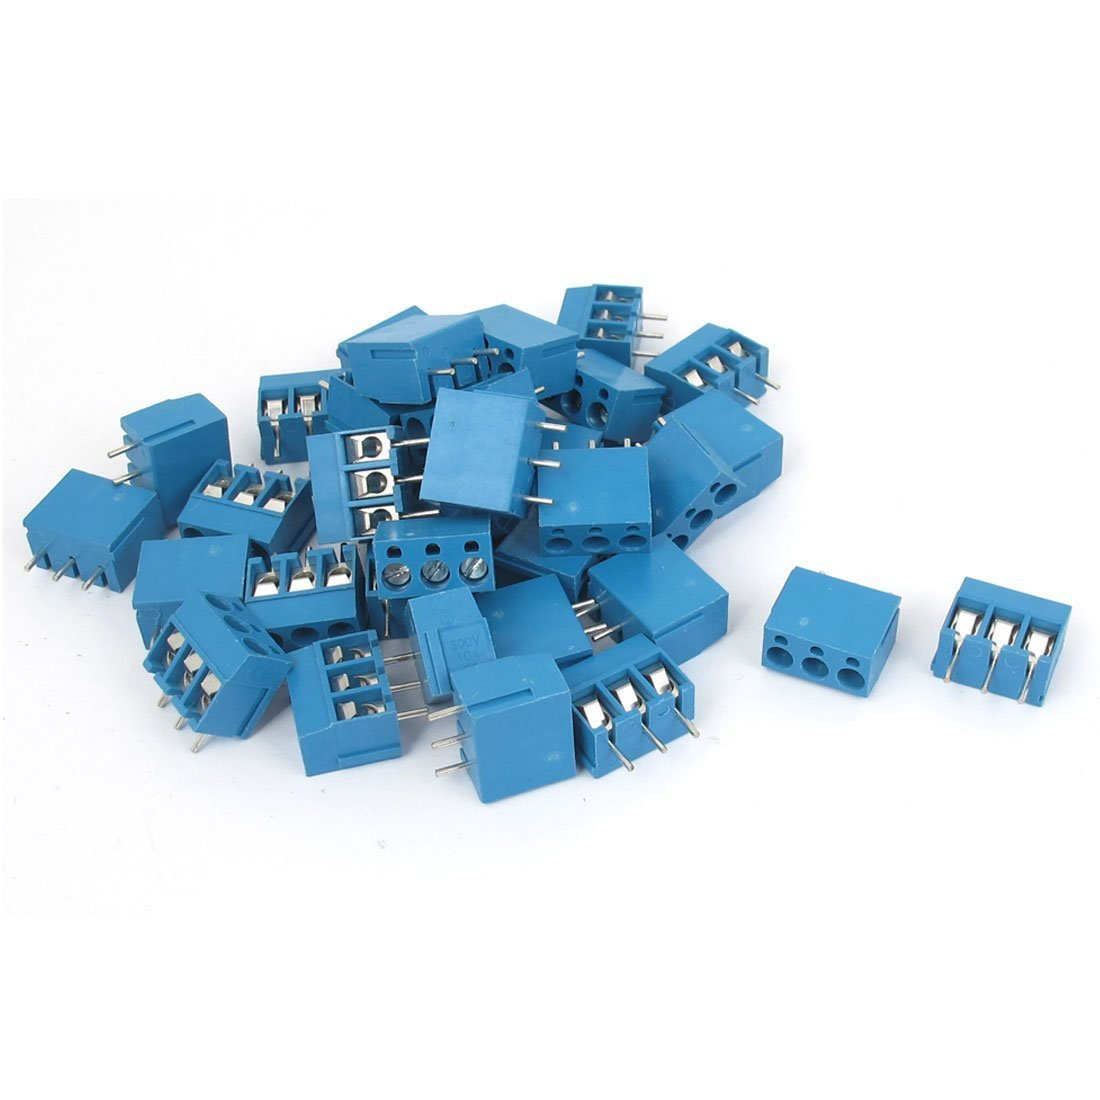 Uxcell a15111000ux0072 AC 300V 10A 3 Poles 5mm Pitch Pcb Mount Terminal Block Connector 35Pcs